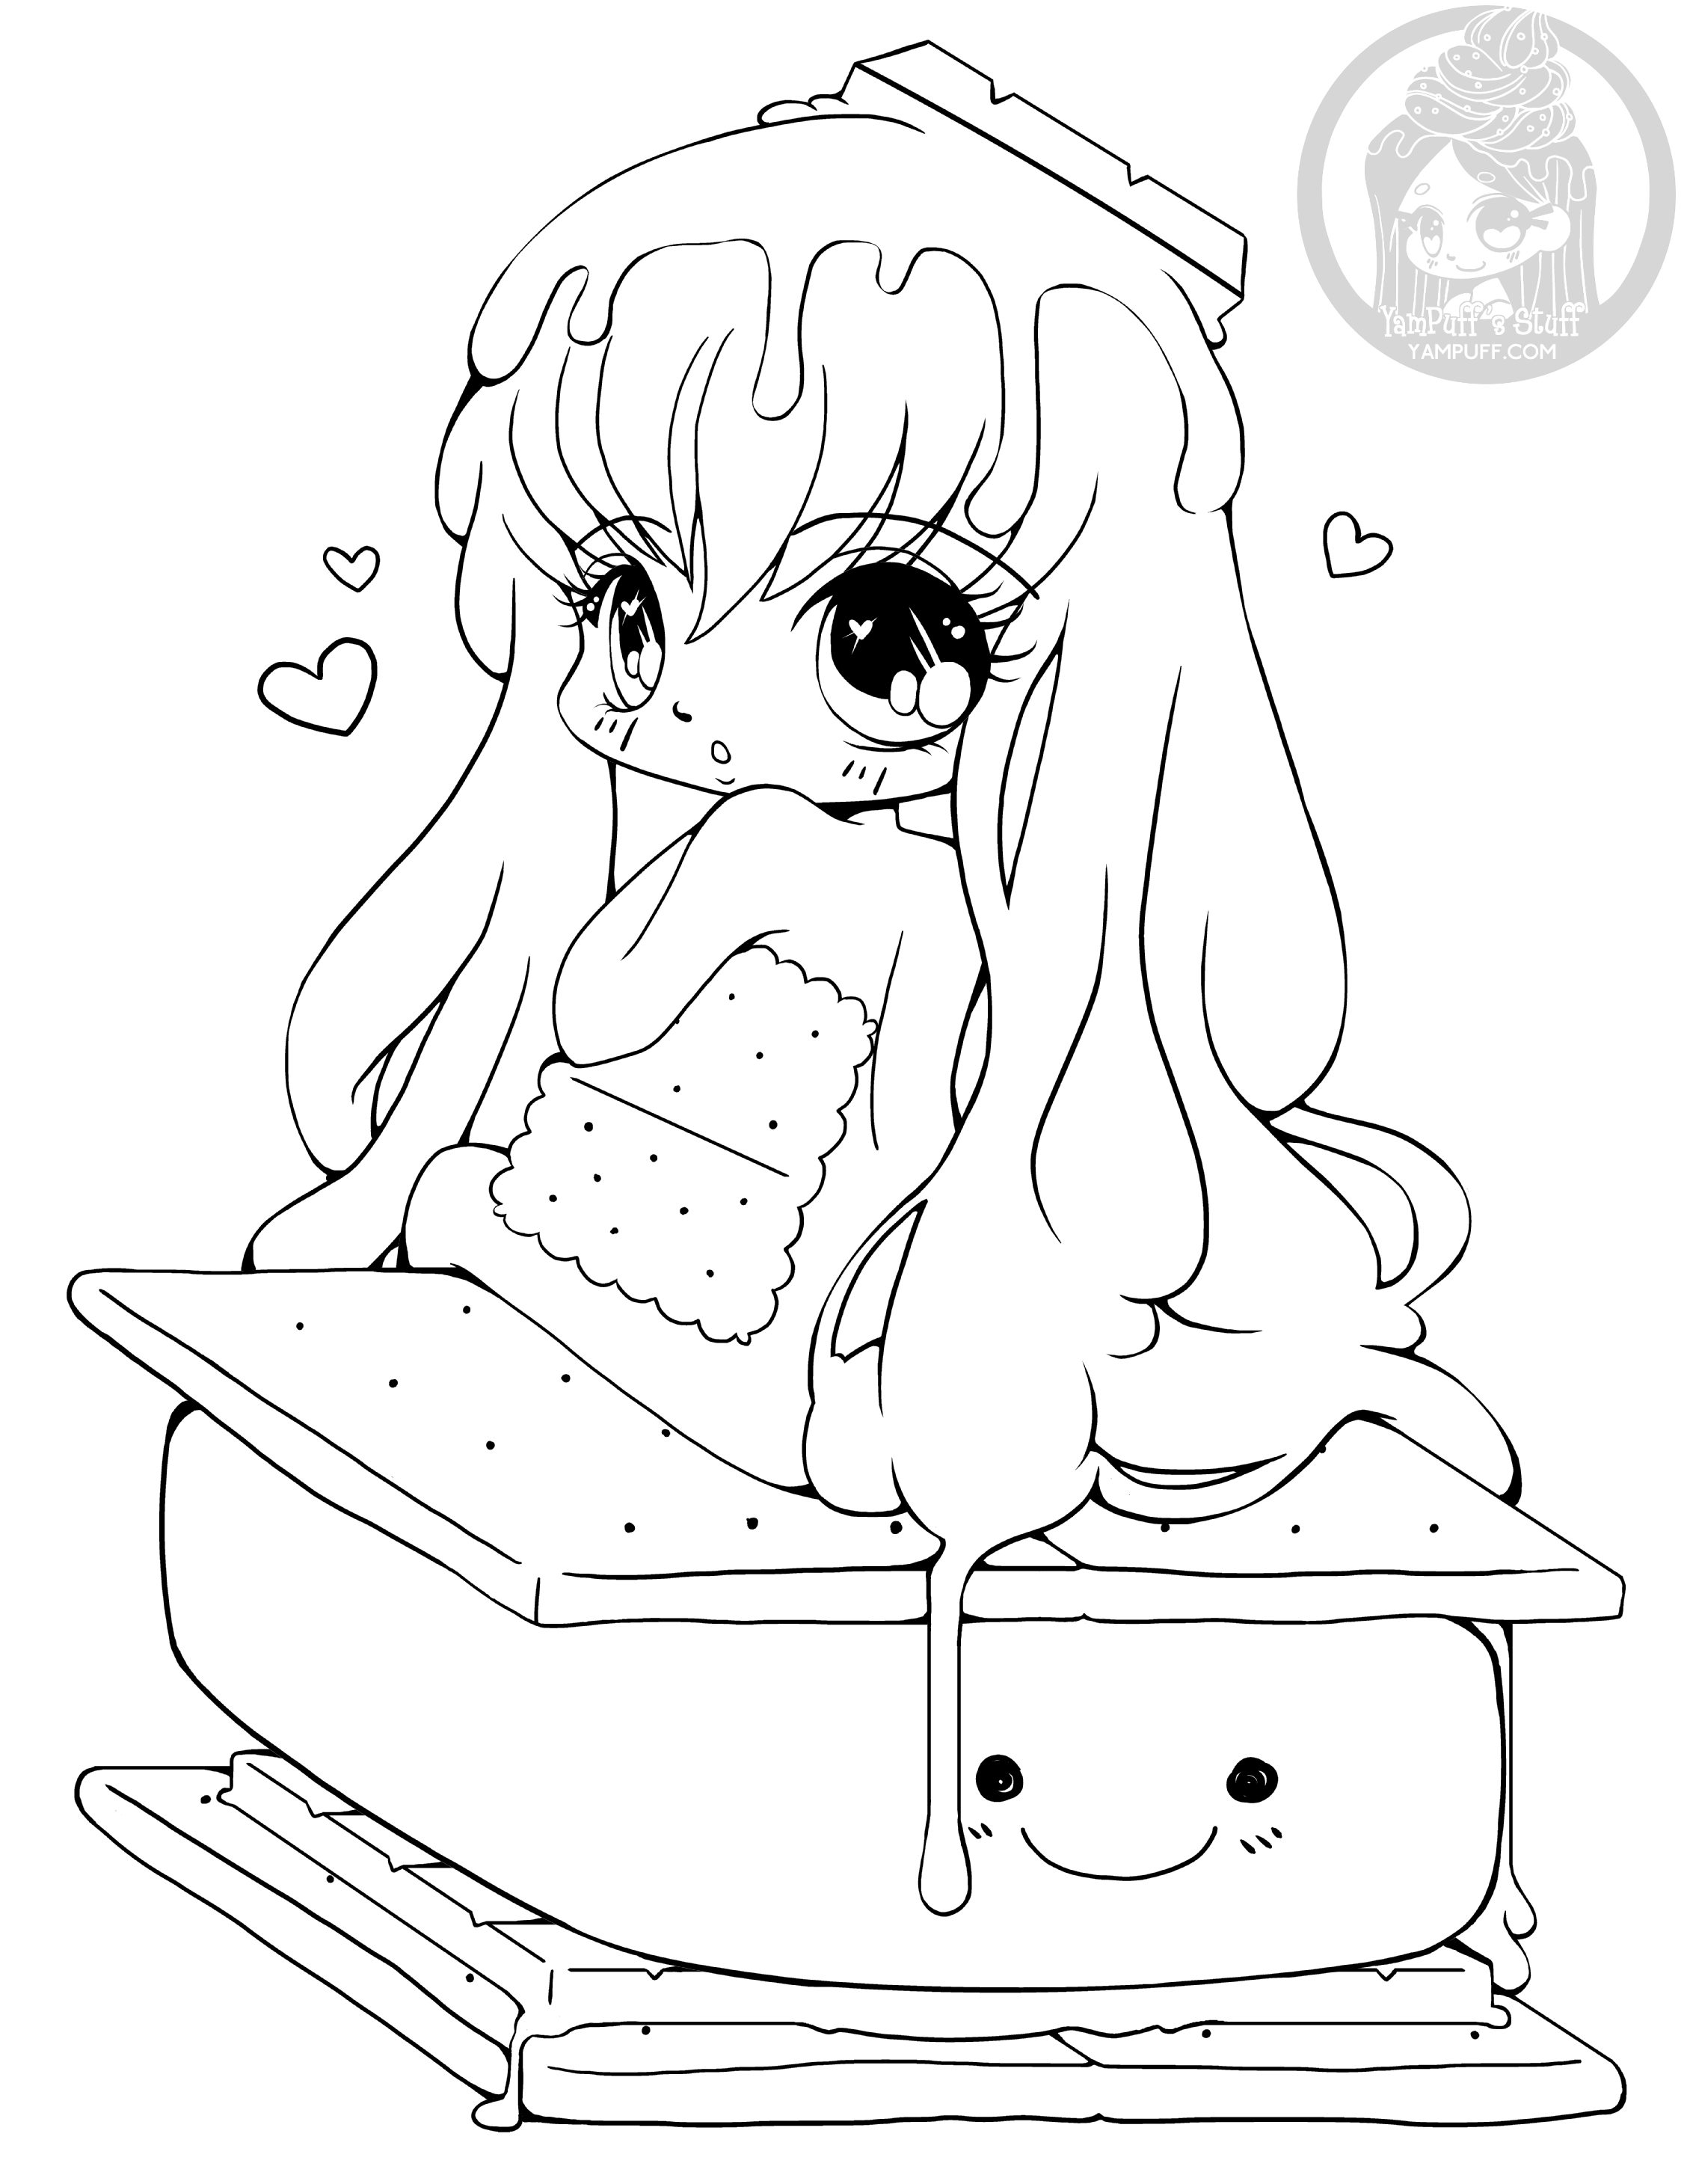 cute chibi girl coloring pages chibis coloring pages imagui cute chibi coloring girl pages